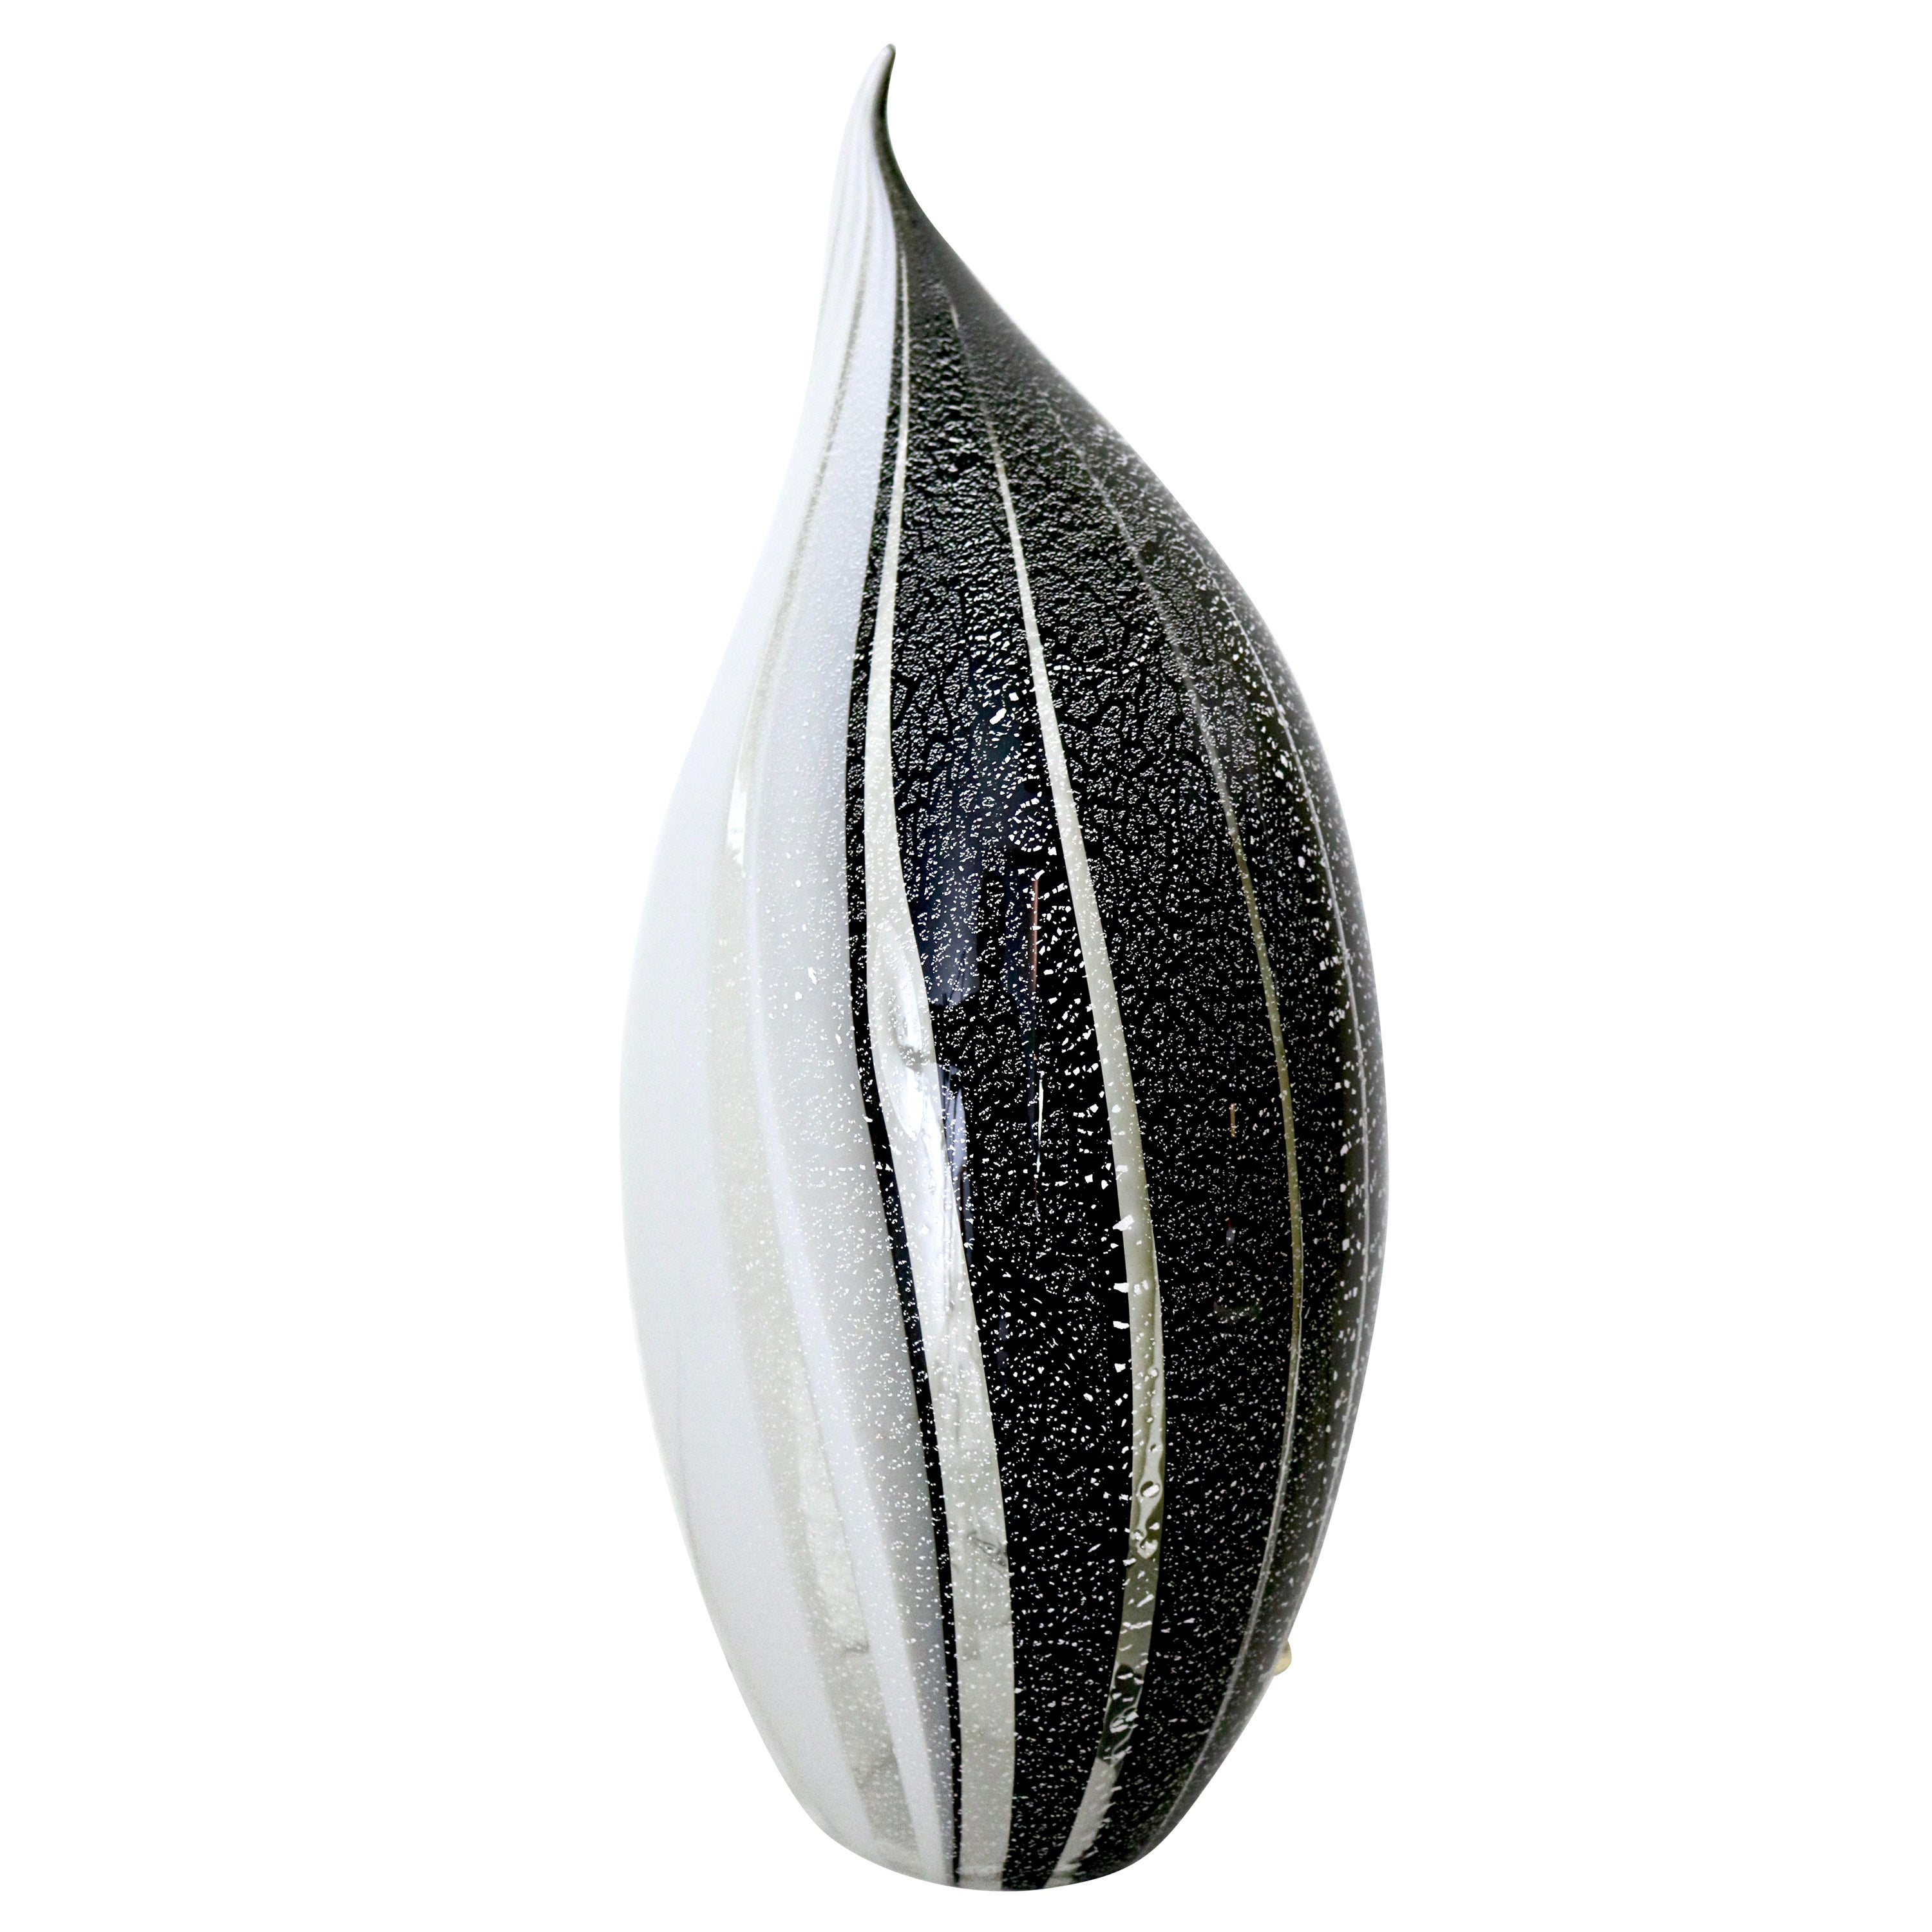 Black and White Penguin Murano Glass Table Lamp with Silver Flakes, Italy, 1980s